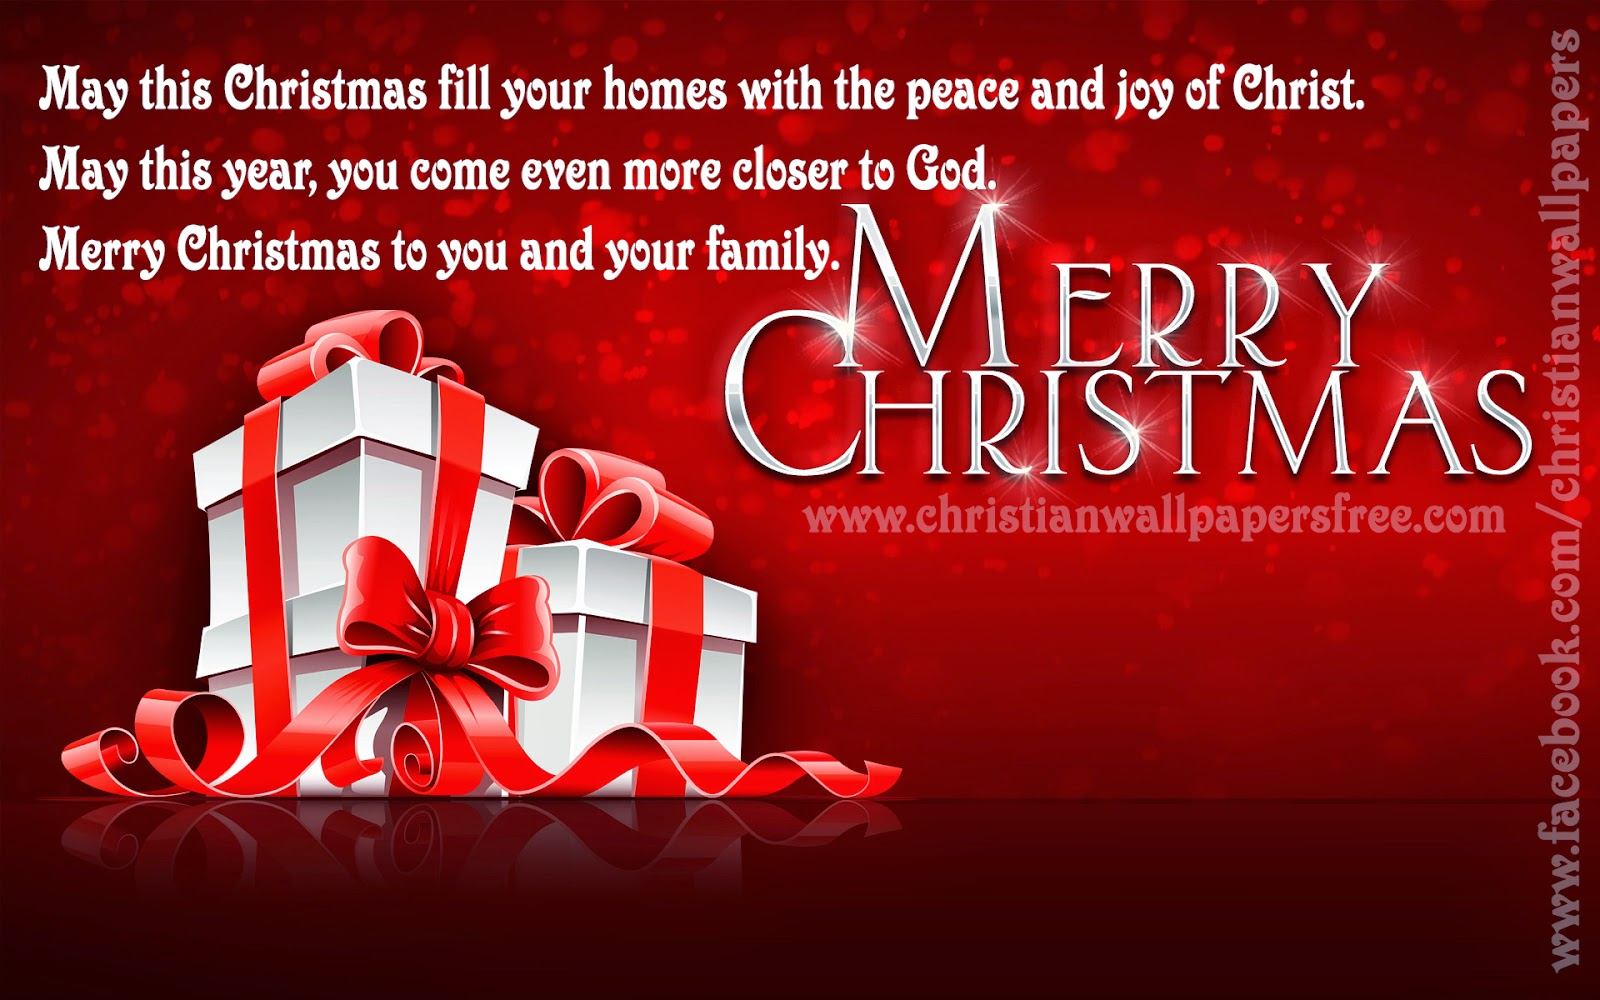 May This Christmas Fill Your Home With The Peace And Joy Of CHRIST.